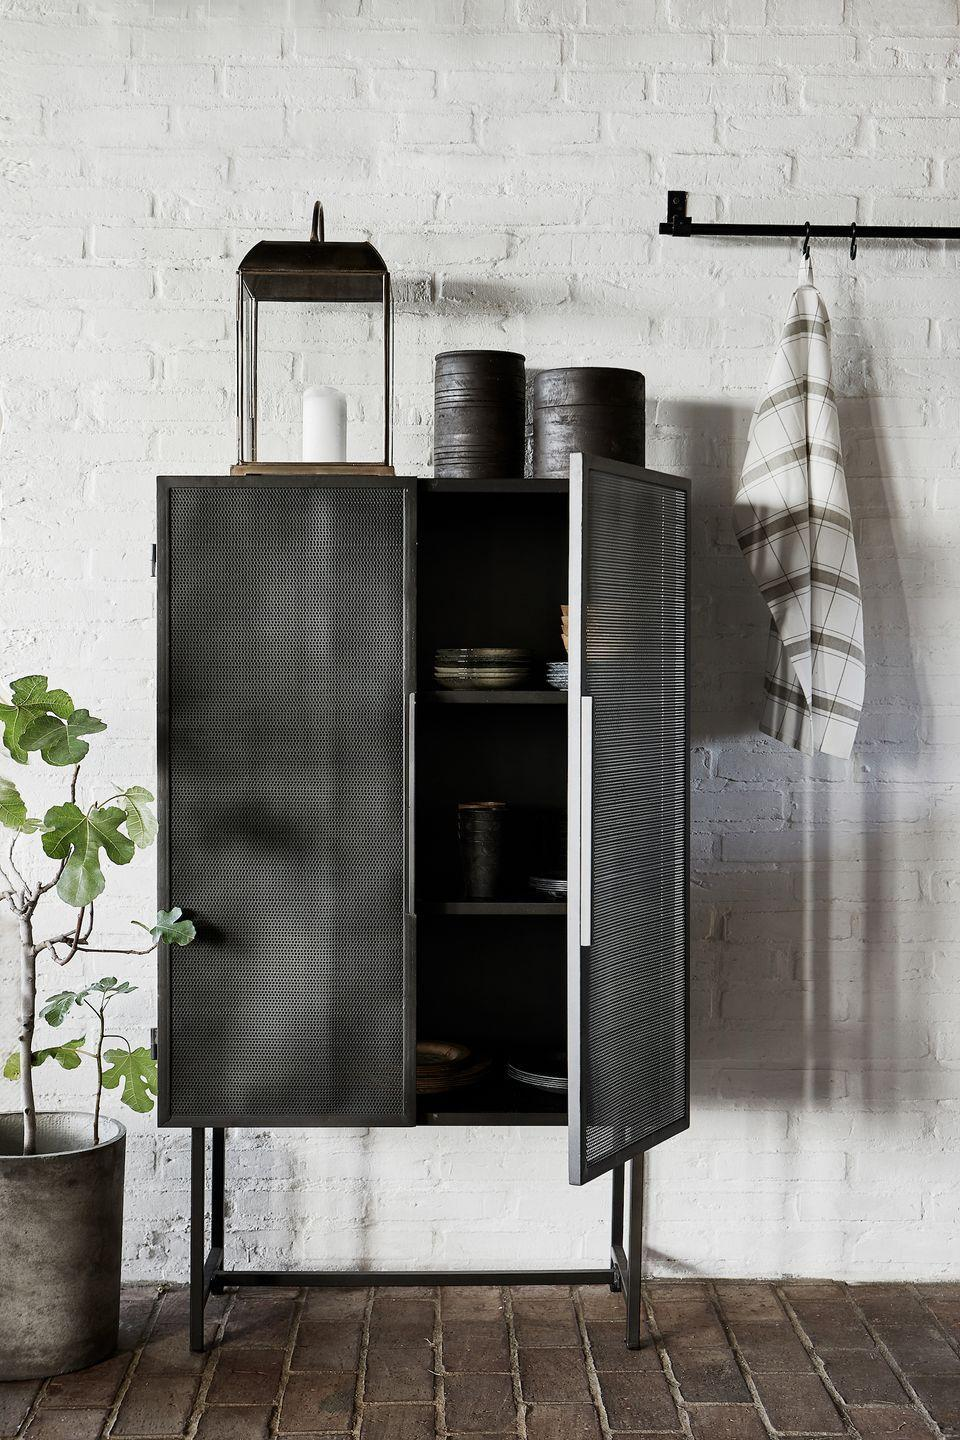 """<p>Often it's the layout of a kitchen that needs an overhaul. If your cupboards are full to the brim and utensils are never to hand, a freestanding piece such as a <a href=""""https://www.housebeautiful.com/uk/decorate/kitchen/g27318935/kitchen-larder-ideas/"""" rel=""""nofollow noopener"""" target=""""_blank"""" data-ylk=""""slk:larder cupboard"""" class=""""link rapid-noclick-resp"""">larder cupboard</a> could free up space elsewhere, meaning you can finally fit the mugs next to the kettle!</p><p>Pictured: Collect cabinet by House Doctor, <a href=""""https://www.nunido.co.uk/"""" rel=""""nofollow noopener"""" target=""""_blank"""" data-ylk=""""slk:Nunido"""" class=""""link rapid-noclick-resp"""">Nunido</a></p>"""